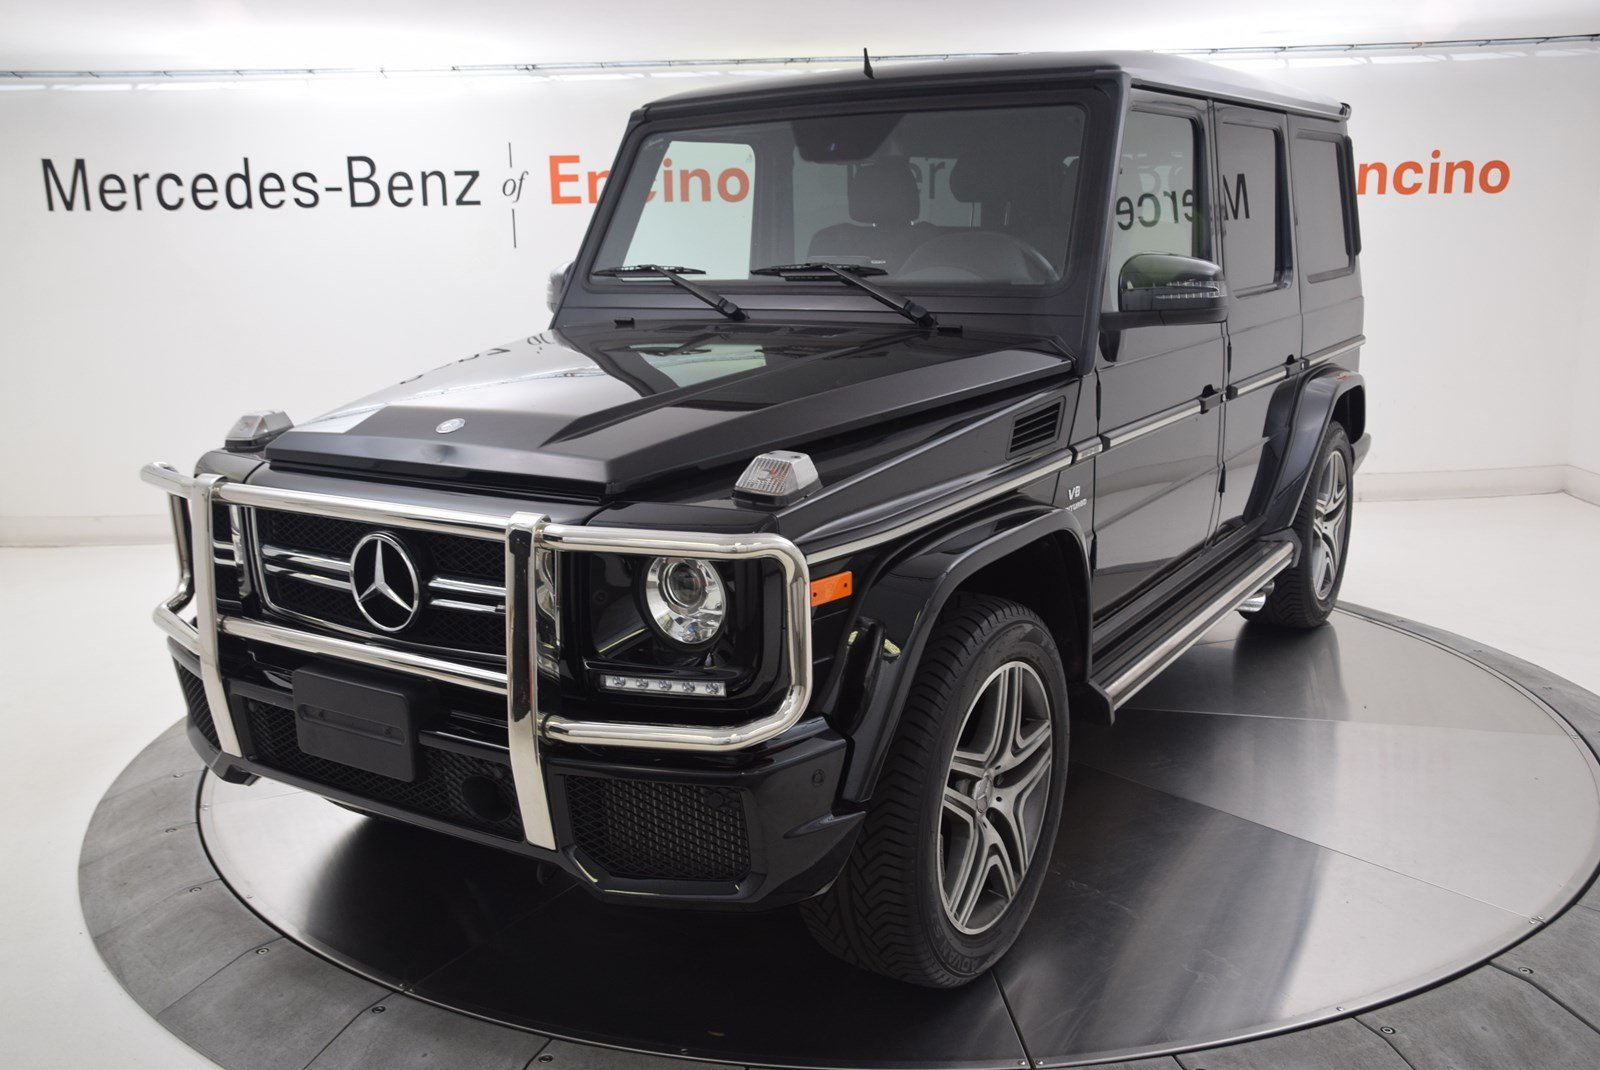 Pre owned 2016 mercedes benz g class g 63 amg suv suv in for Mercedes benz g class suv price